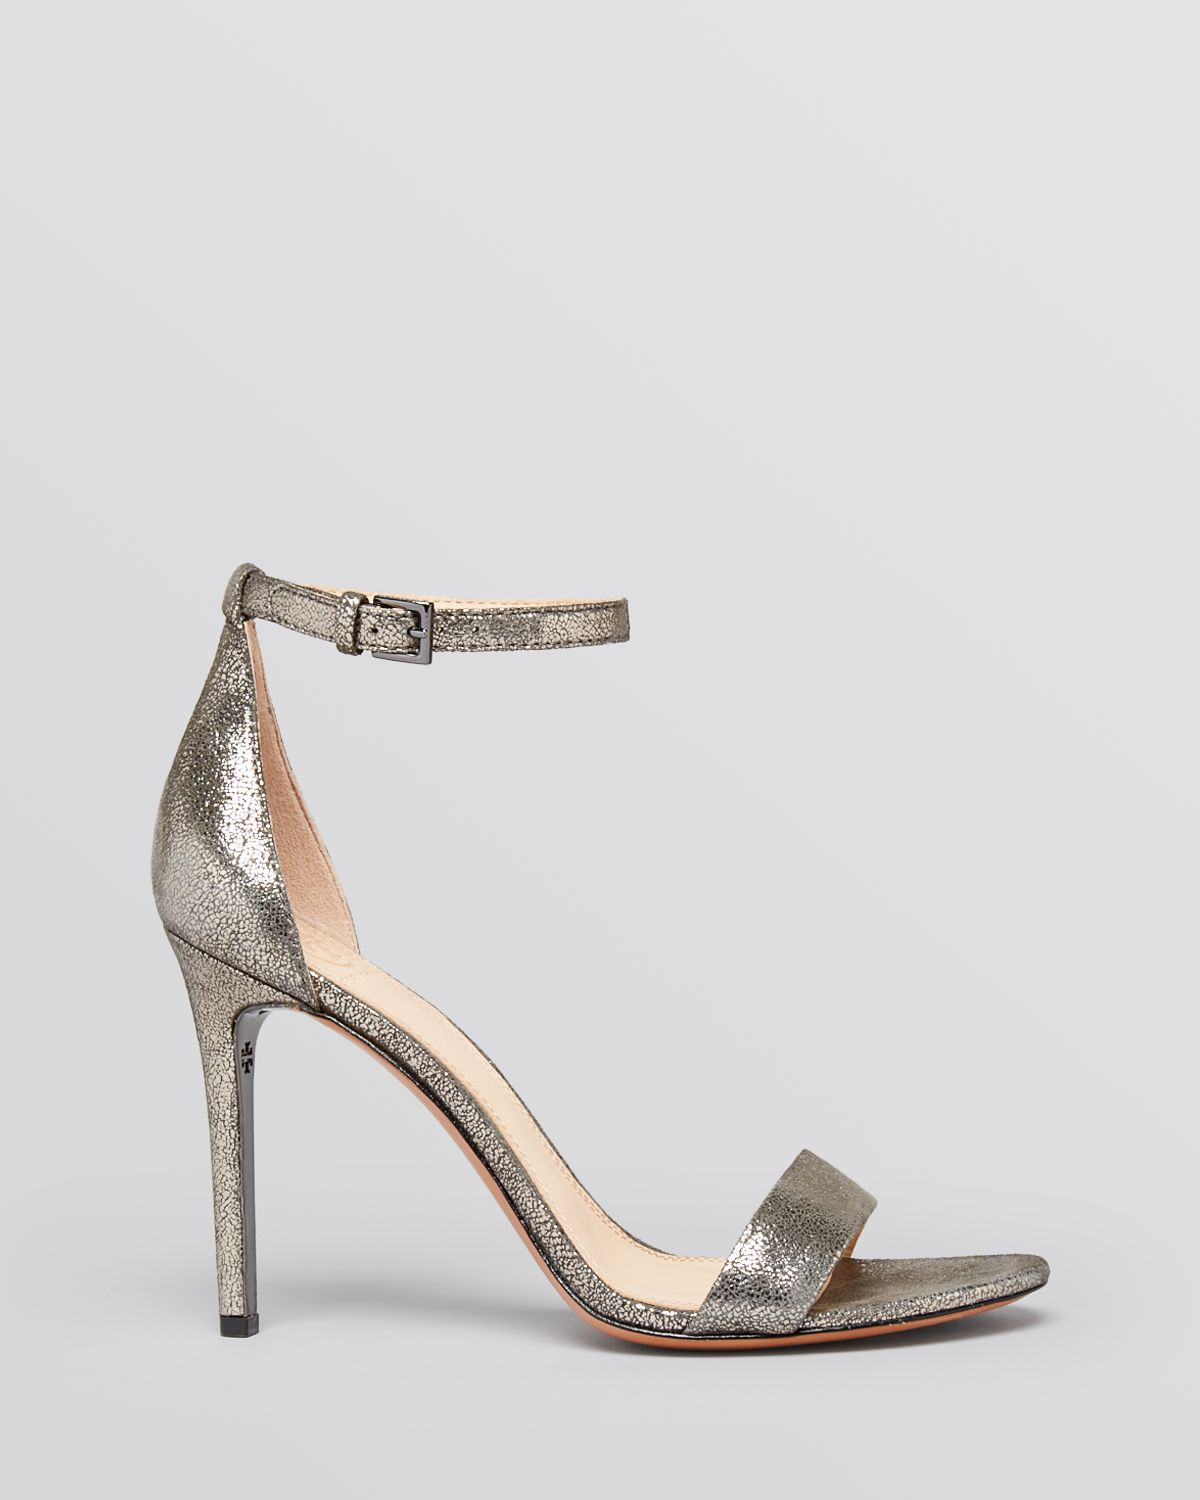 8286228ebe338 Lyst - Tory Burch Open Toe Ankle Strap Evening Sandals - Keri High ...